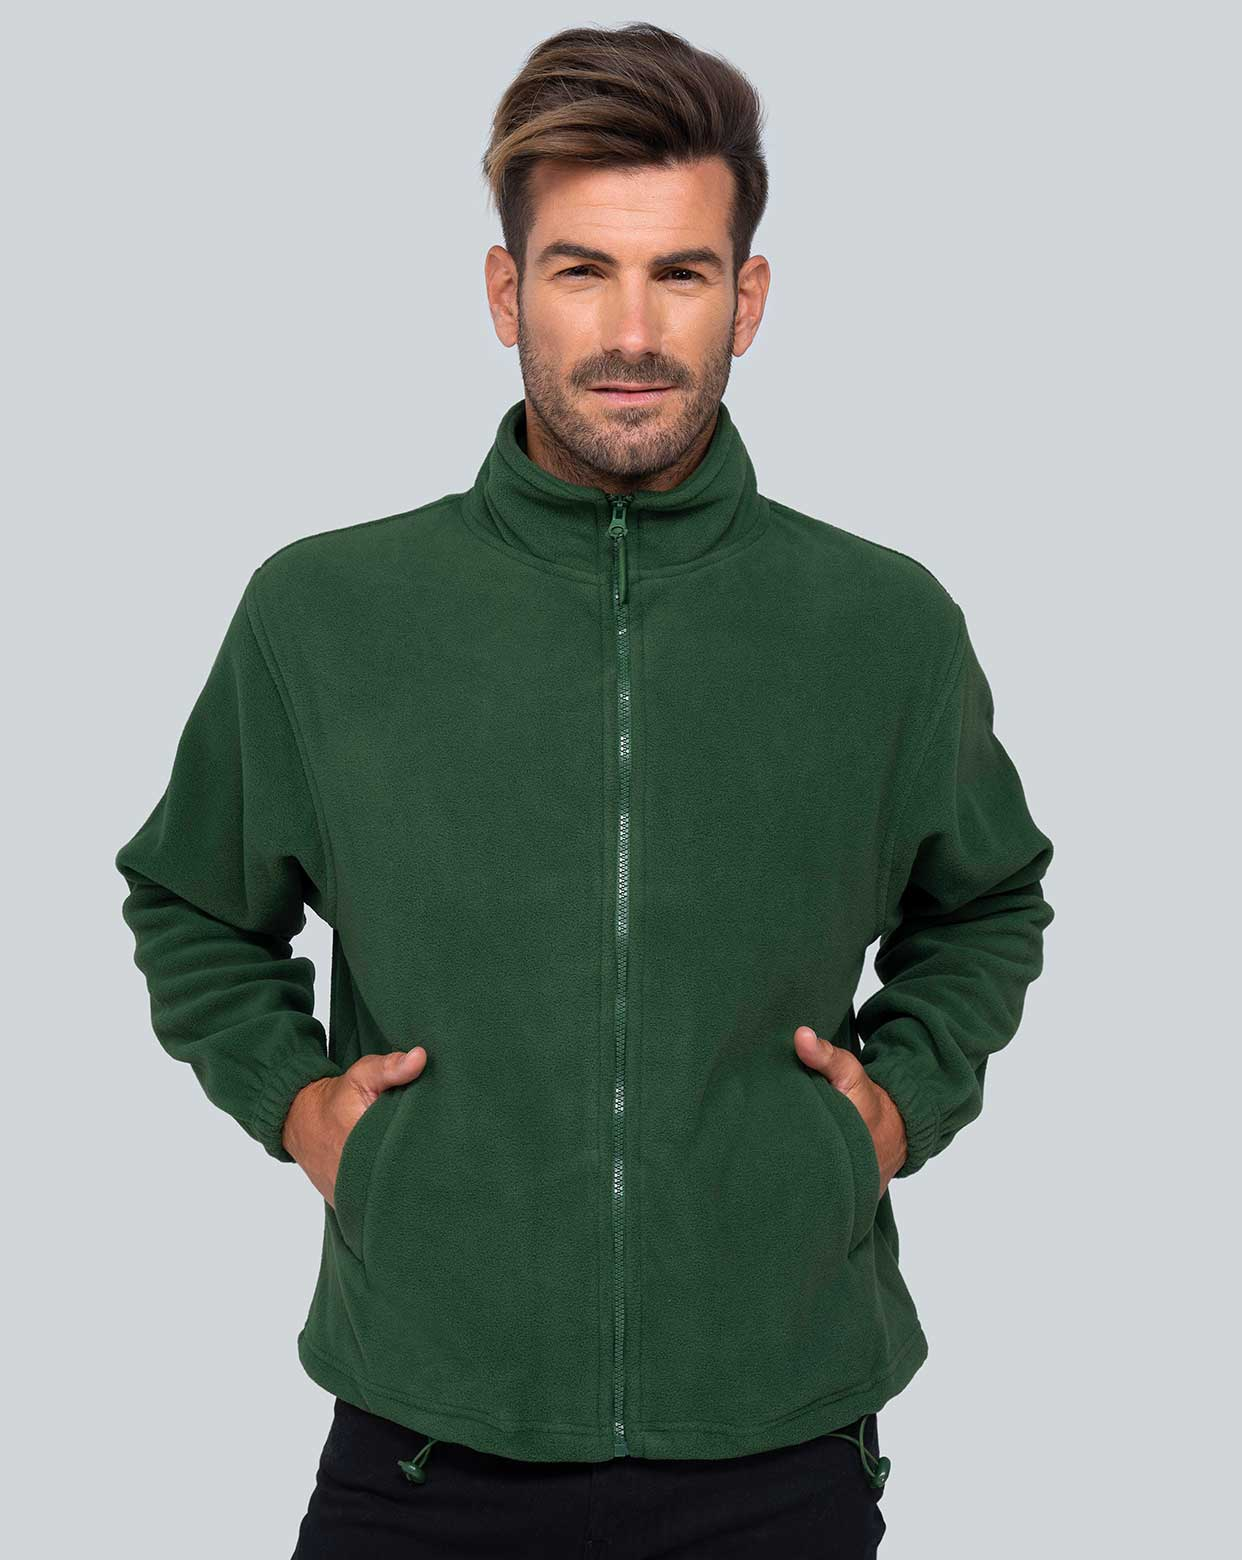 Man Polar Fleece  - FLRA300